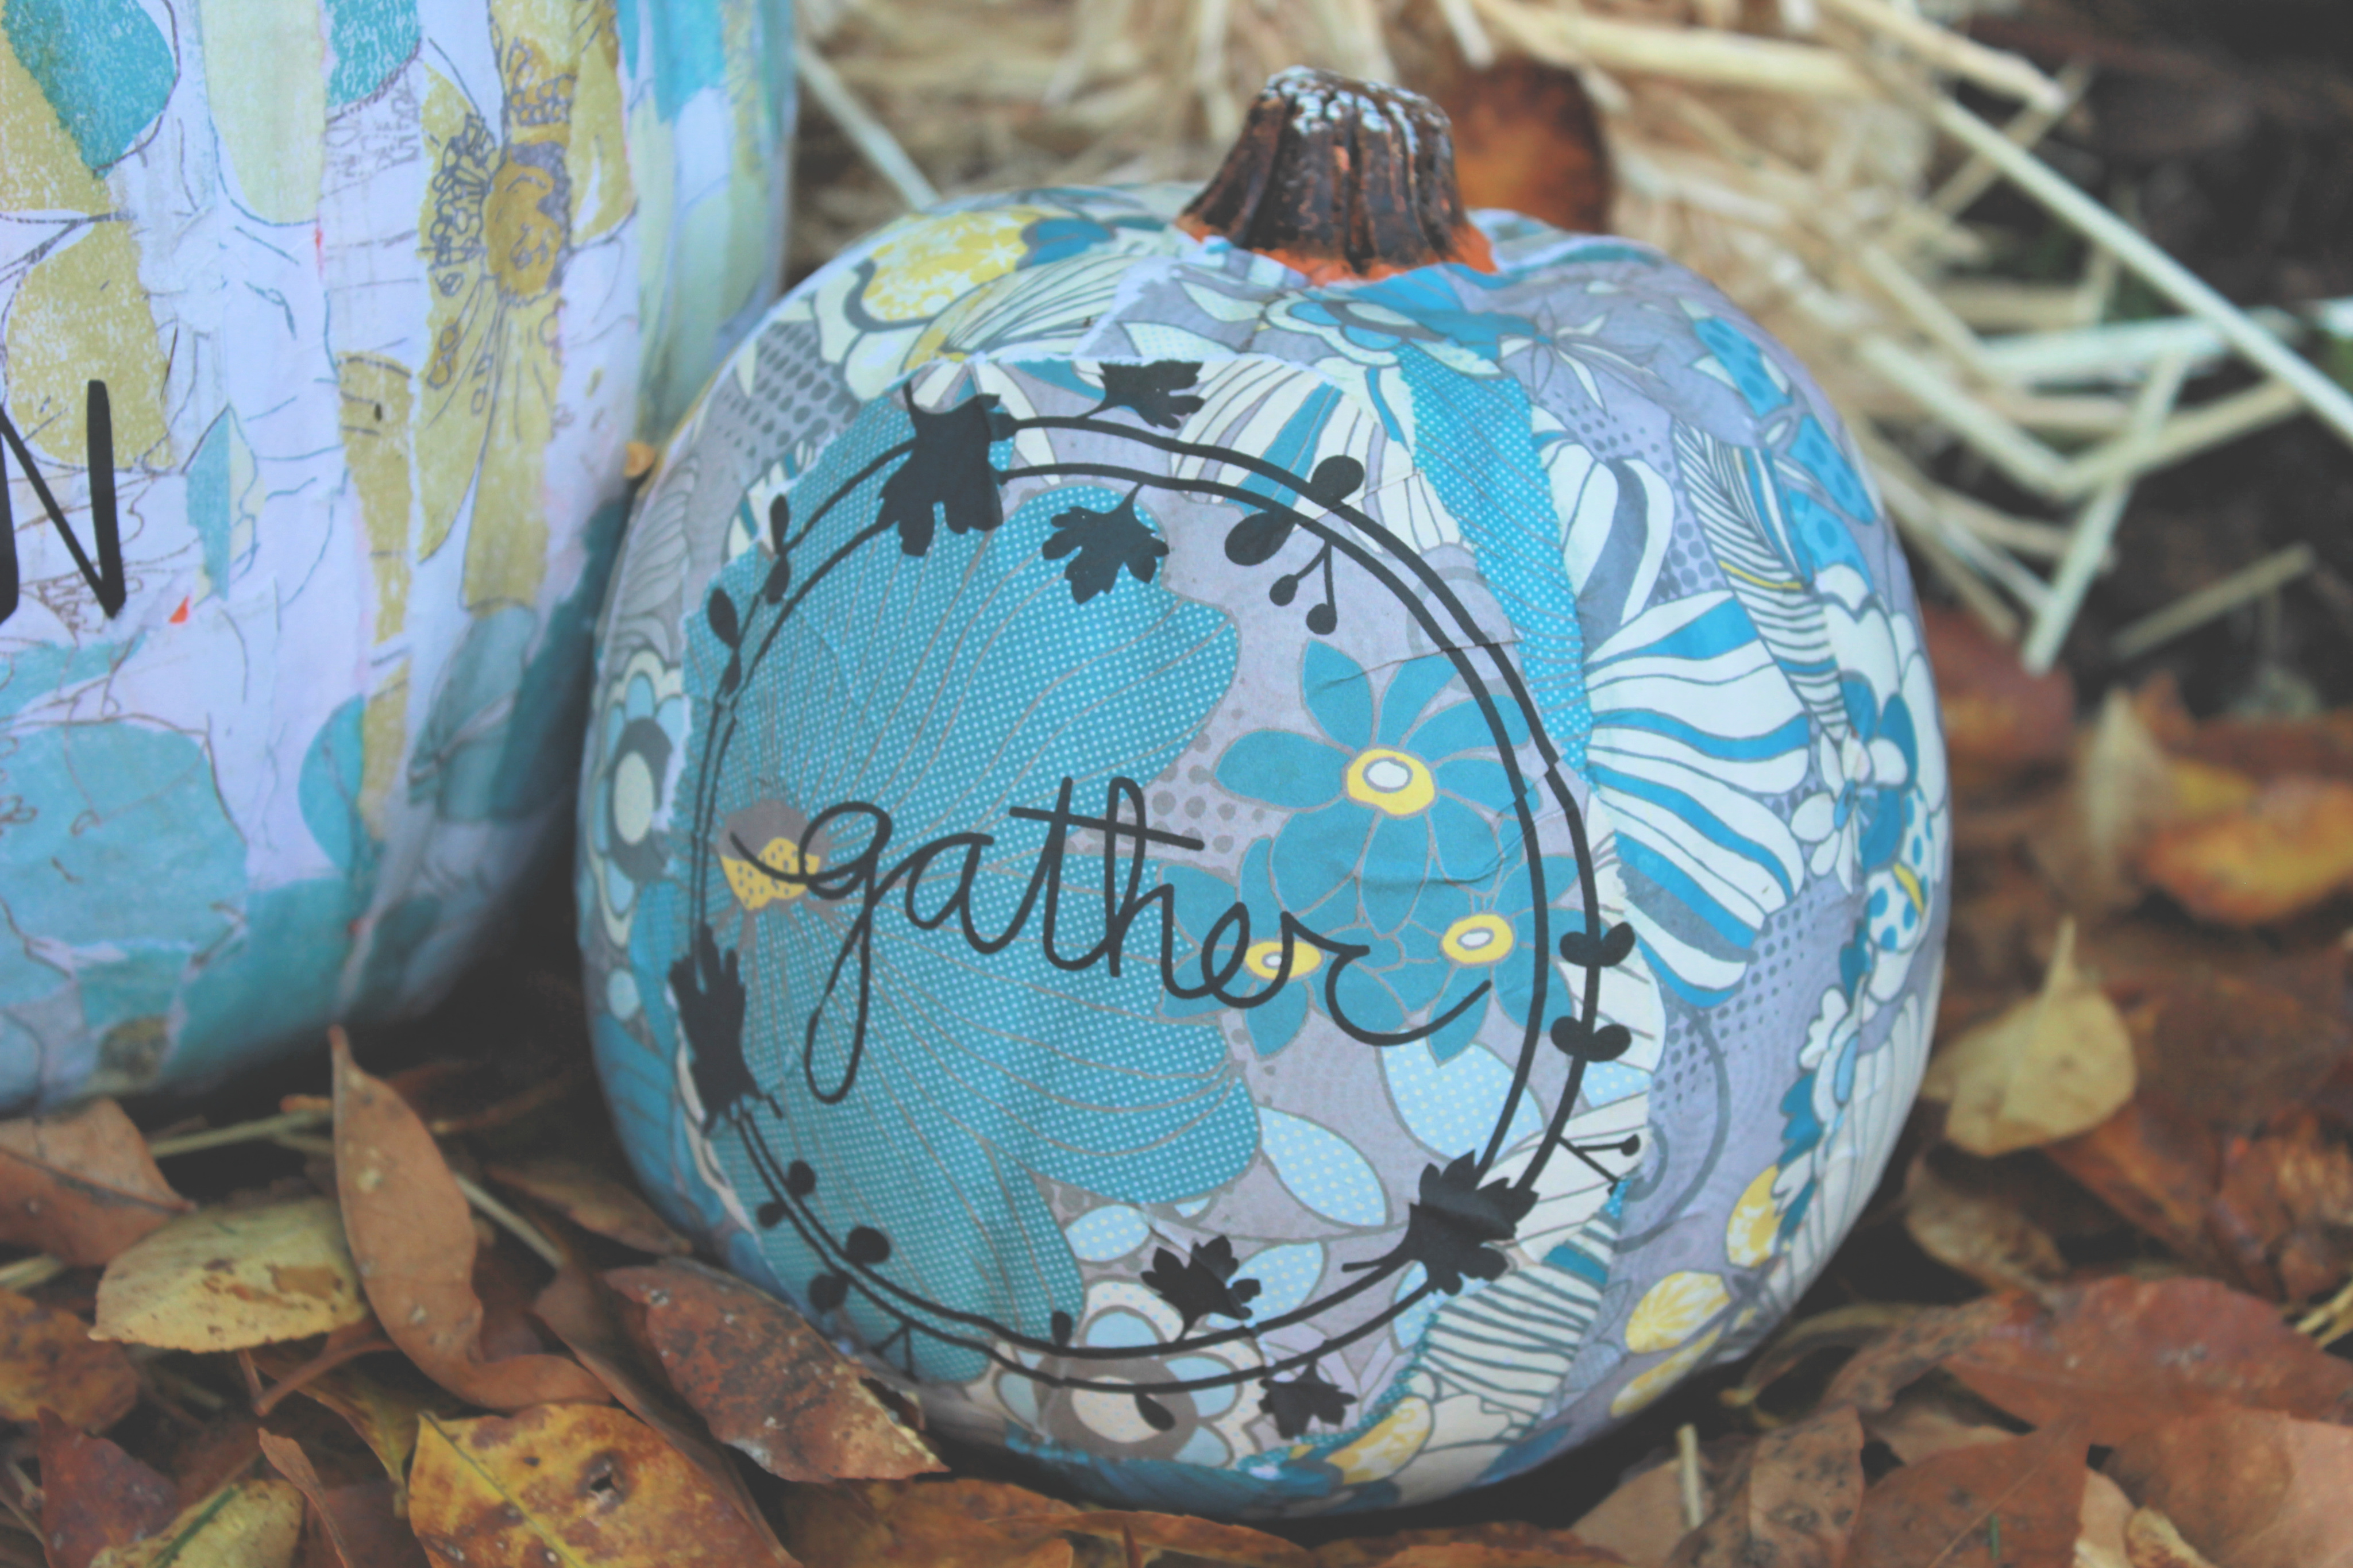 Need ideas for a no carve pumpkin?  Learn how to create beautiful floral Mod Podge pumpkins to celebrate the fall season in this creative tutorial. You're going to love how unique and easy it is for kids and adults! #pumpkins #nocarvepumpkins #fallcrafts #falldecor #pumpkincrafts #scrapbookpaper #thesummeryumbrella